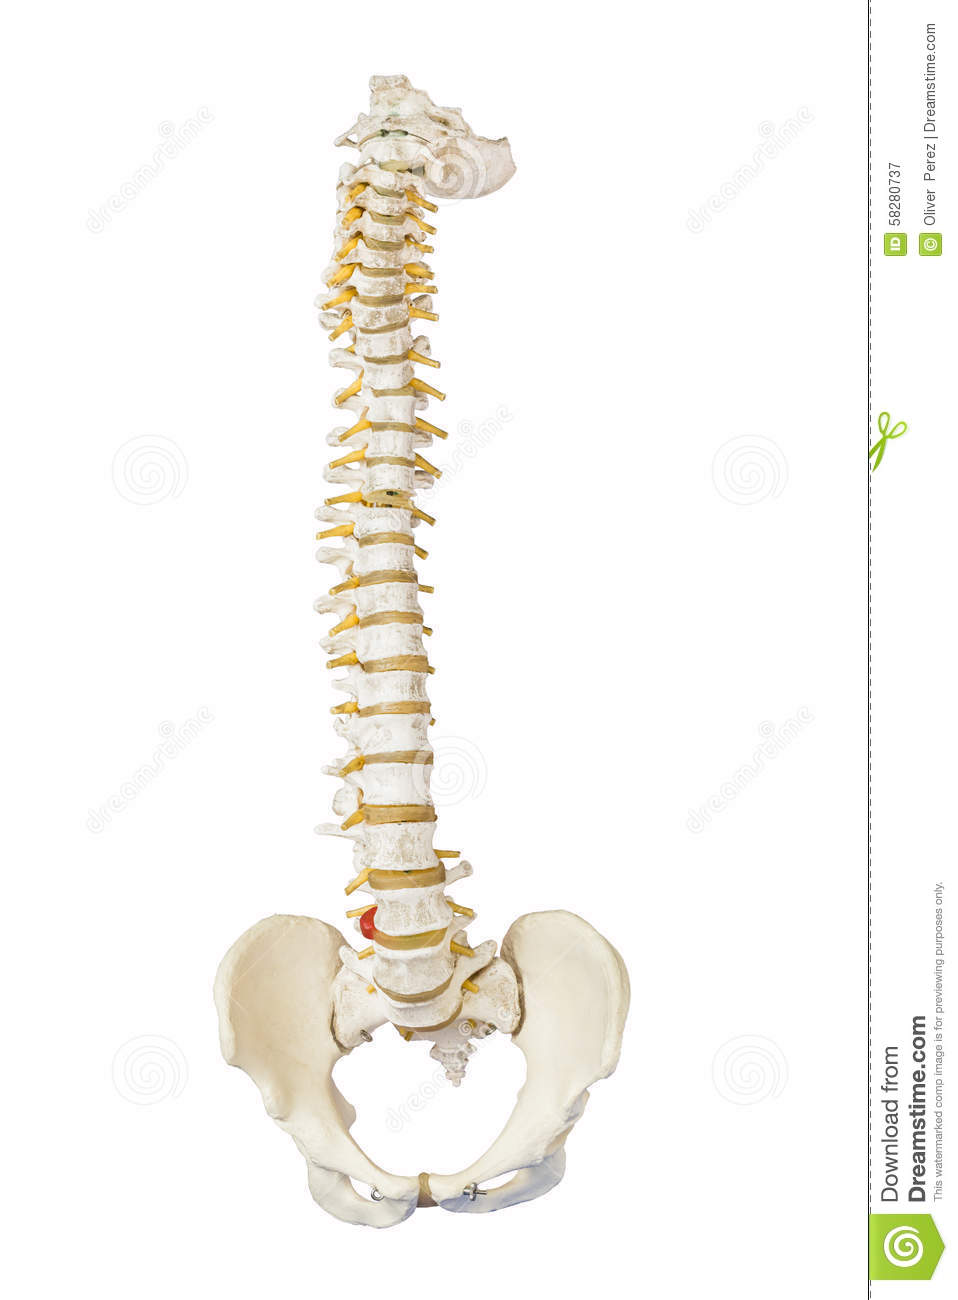 Download Model of human spine stock image. Image of body, health - 58280737